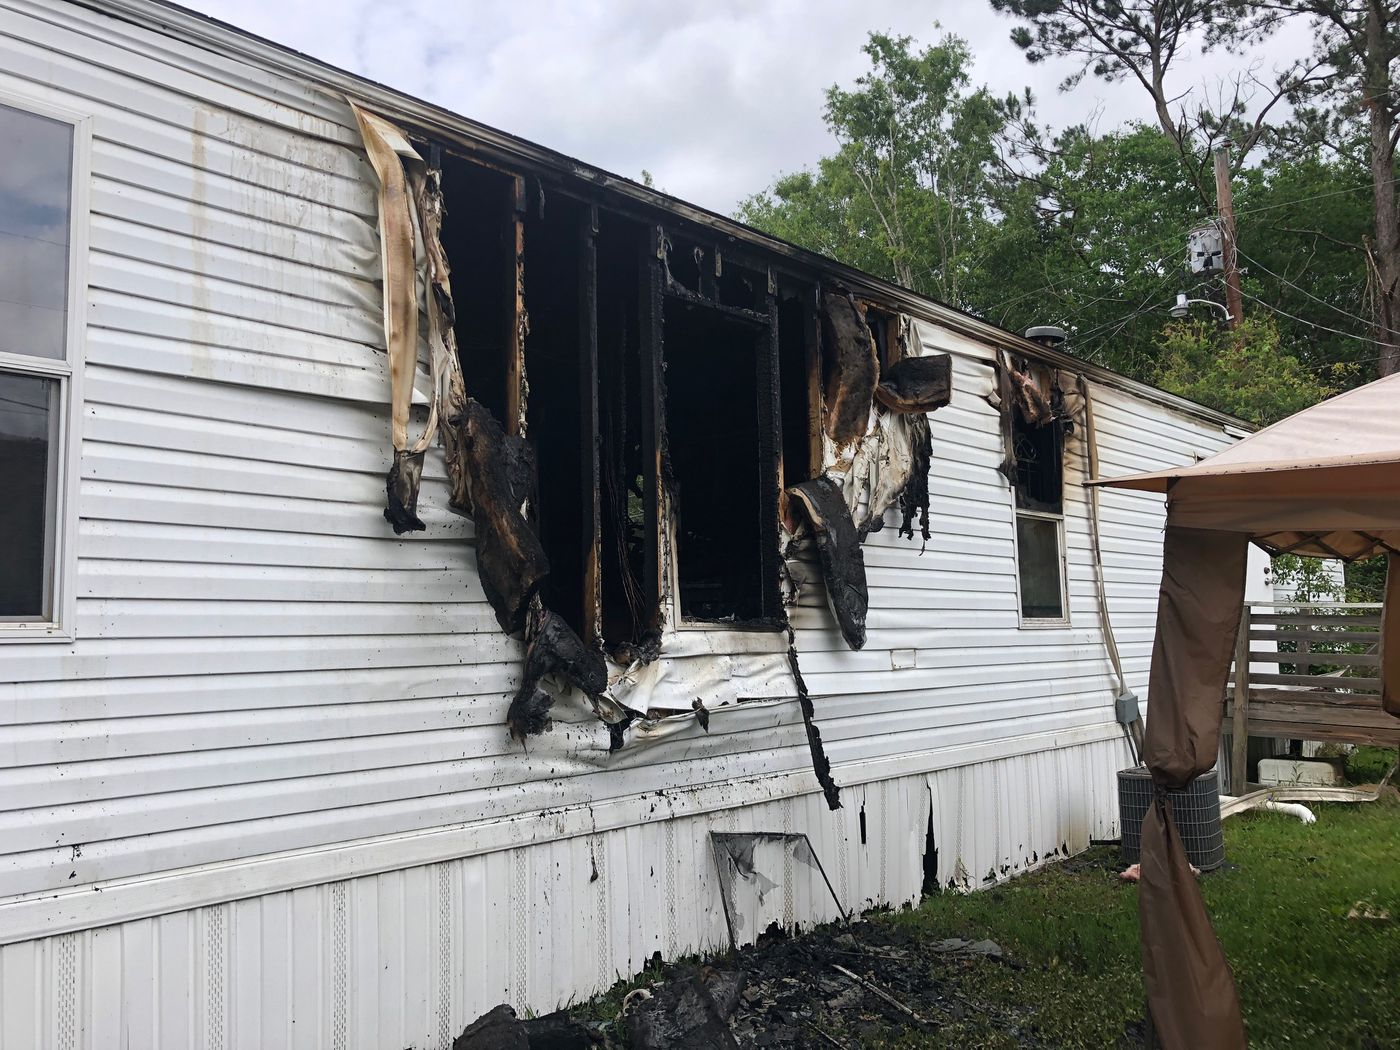 Eawpa woman critically burned after mobile home catches fire on woods mobile homes, urban mobile homes, land mobile homes, stone mobile homes, house mobile homes, wind mobile homes, lily mobile homes, tower mobile homes, california mobile homes, columbia mobile homes, landscape mobile homes, clay mobile homes, garden mobile homes, lake mobile homes, rock mobile homes, sand mobile homes, white mobile homes, dog mobile homes, coast mobile homes, school mobile homes,